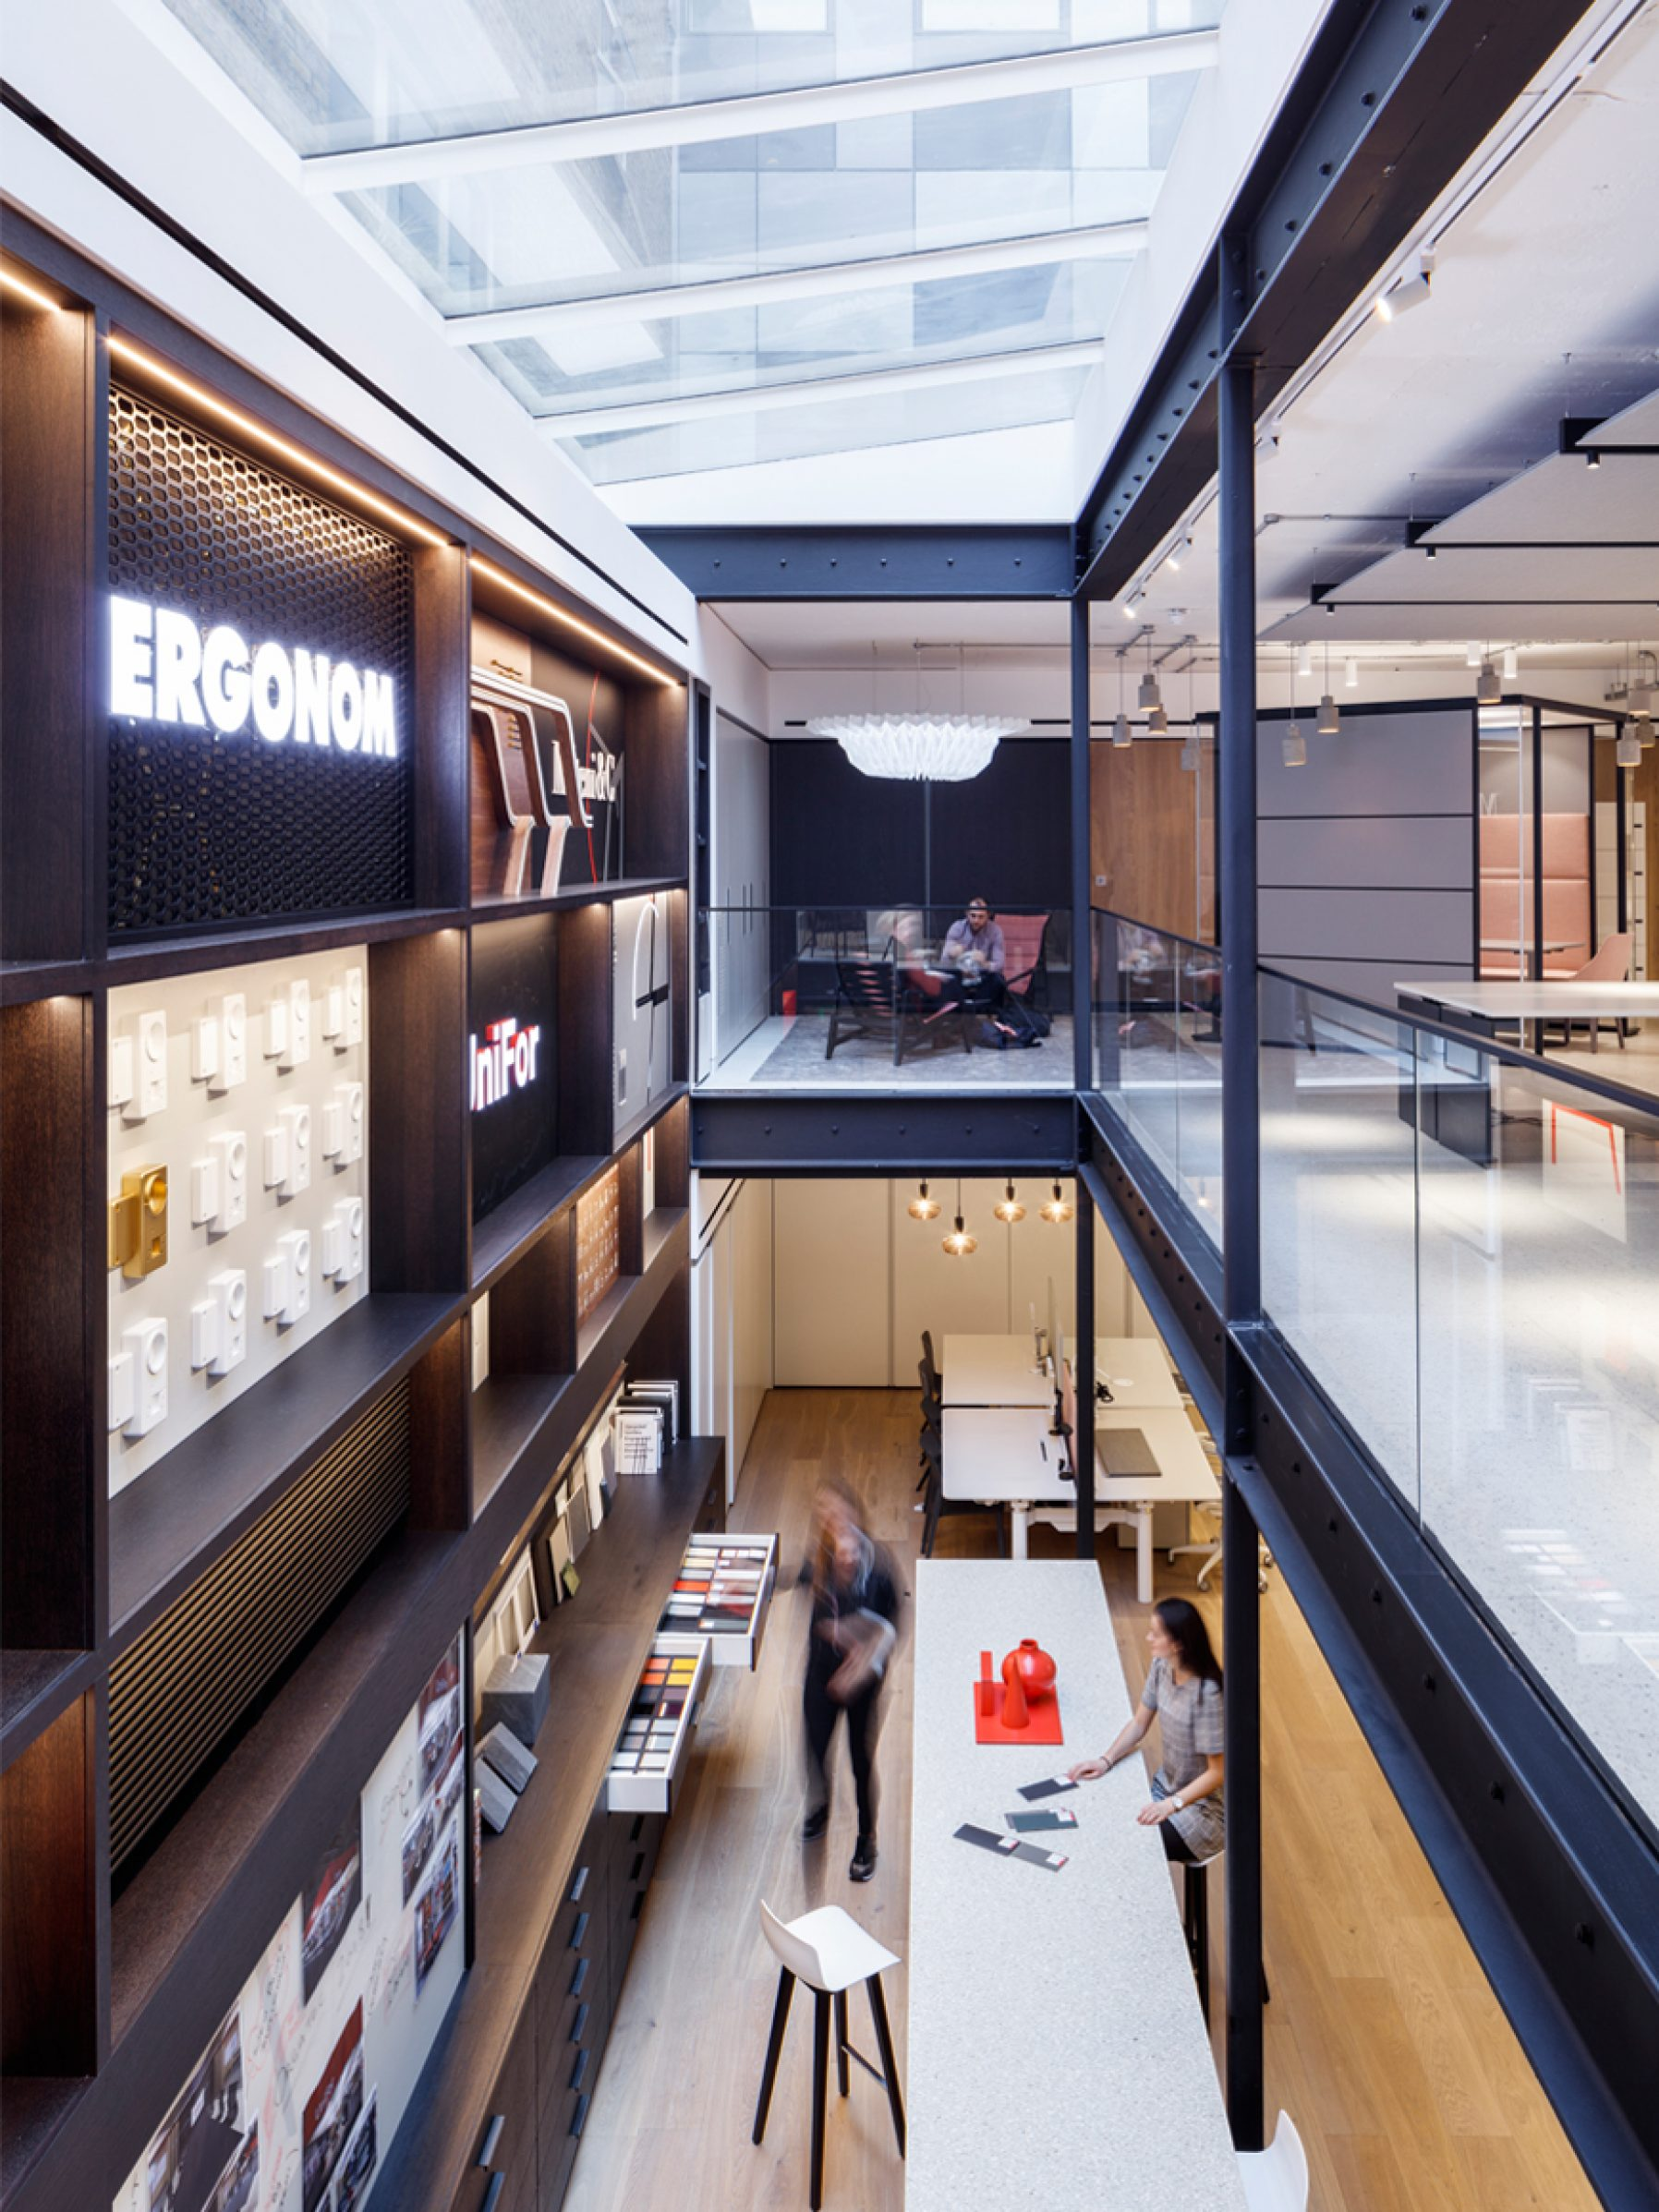 Ergonom Showroom・London